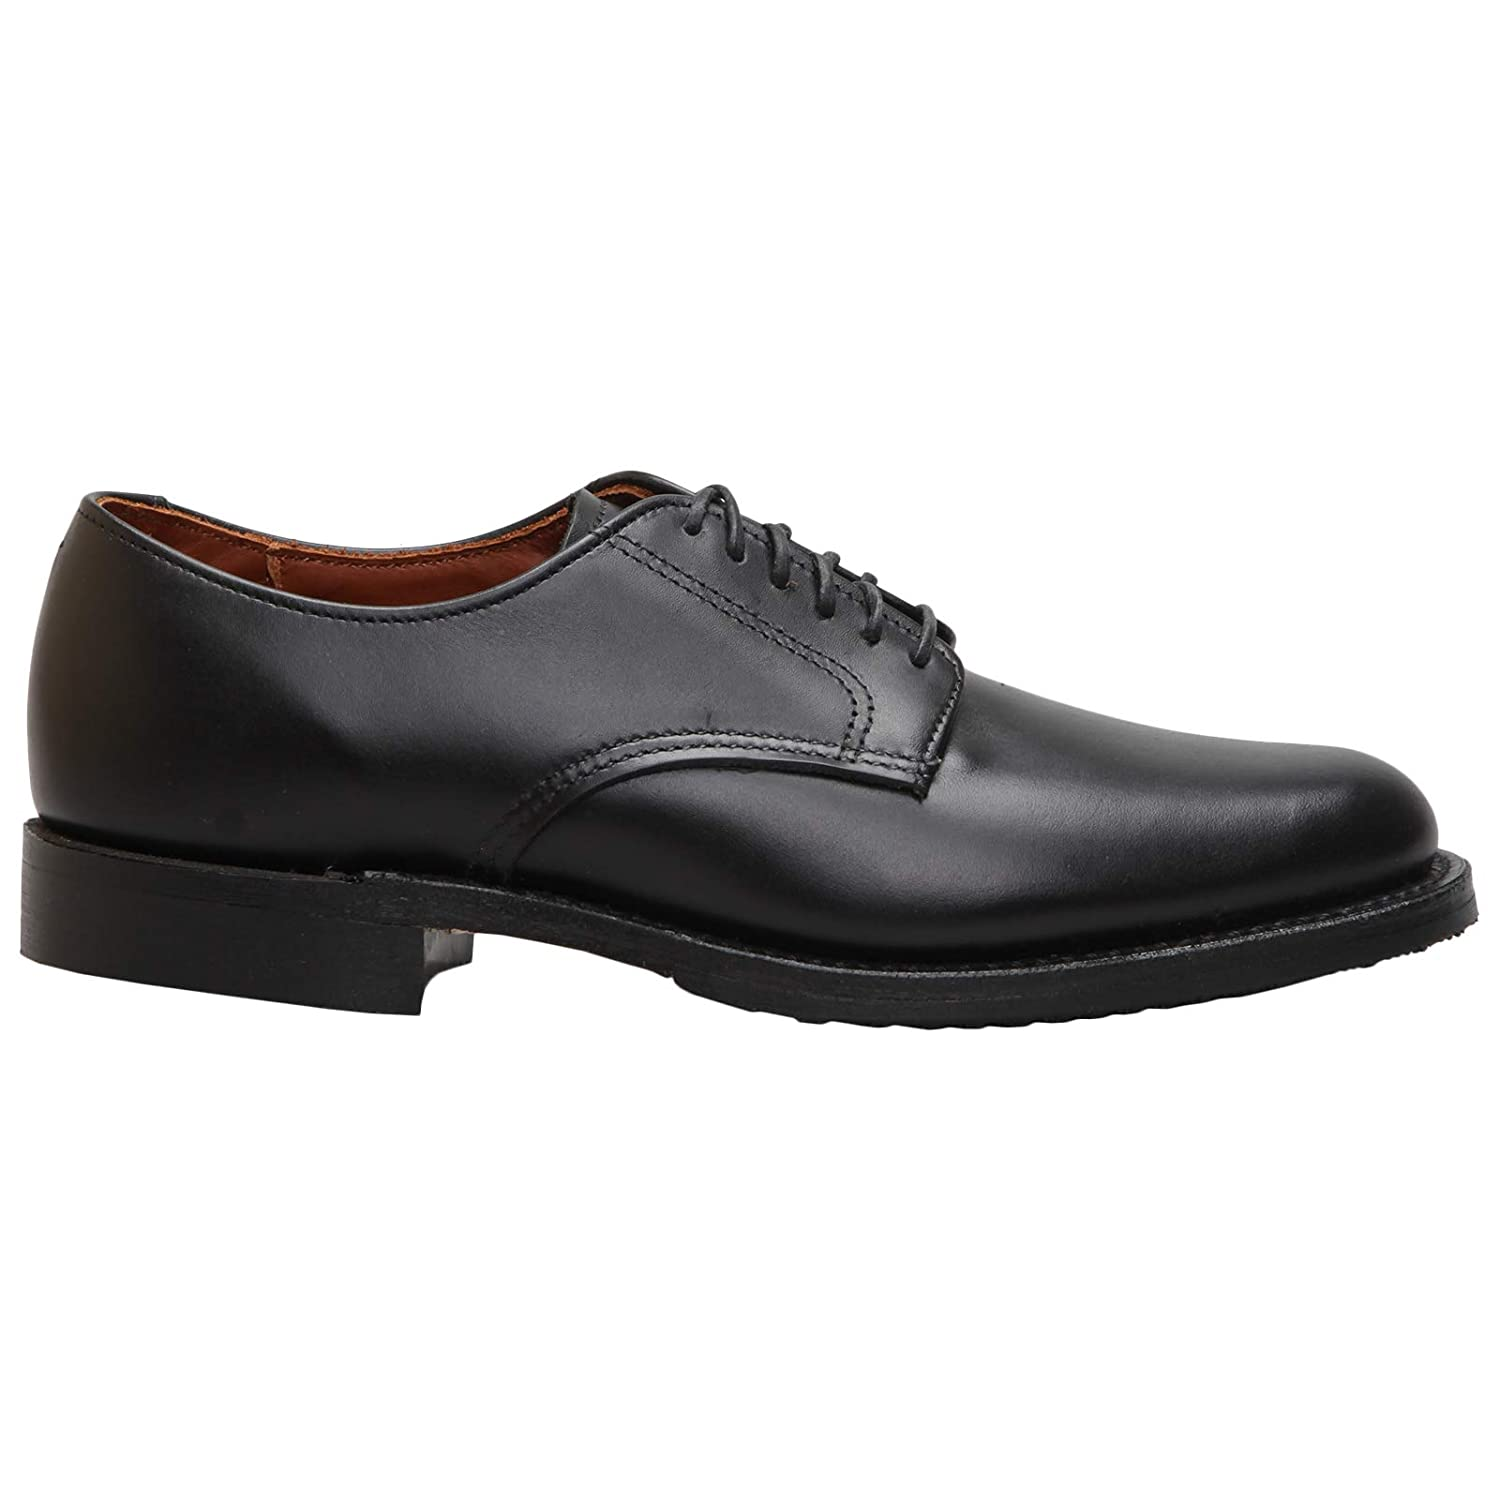 Red Wing Hombre Williston Oxford Cuero Black Zapatos 42.5 EU